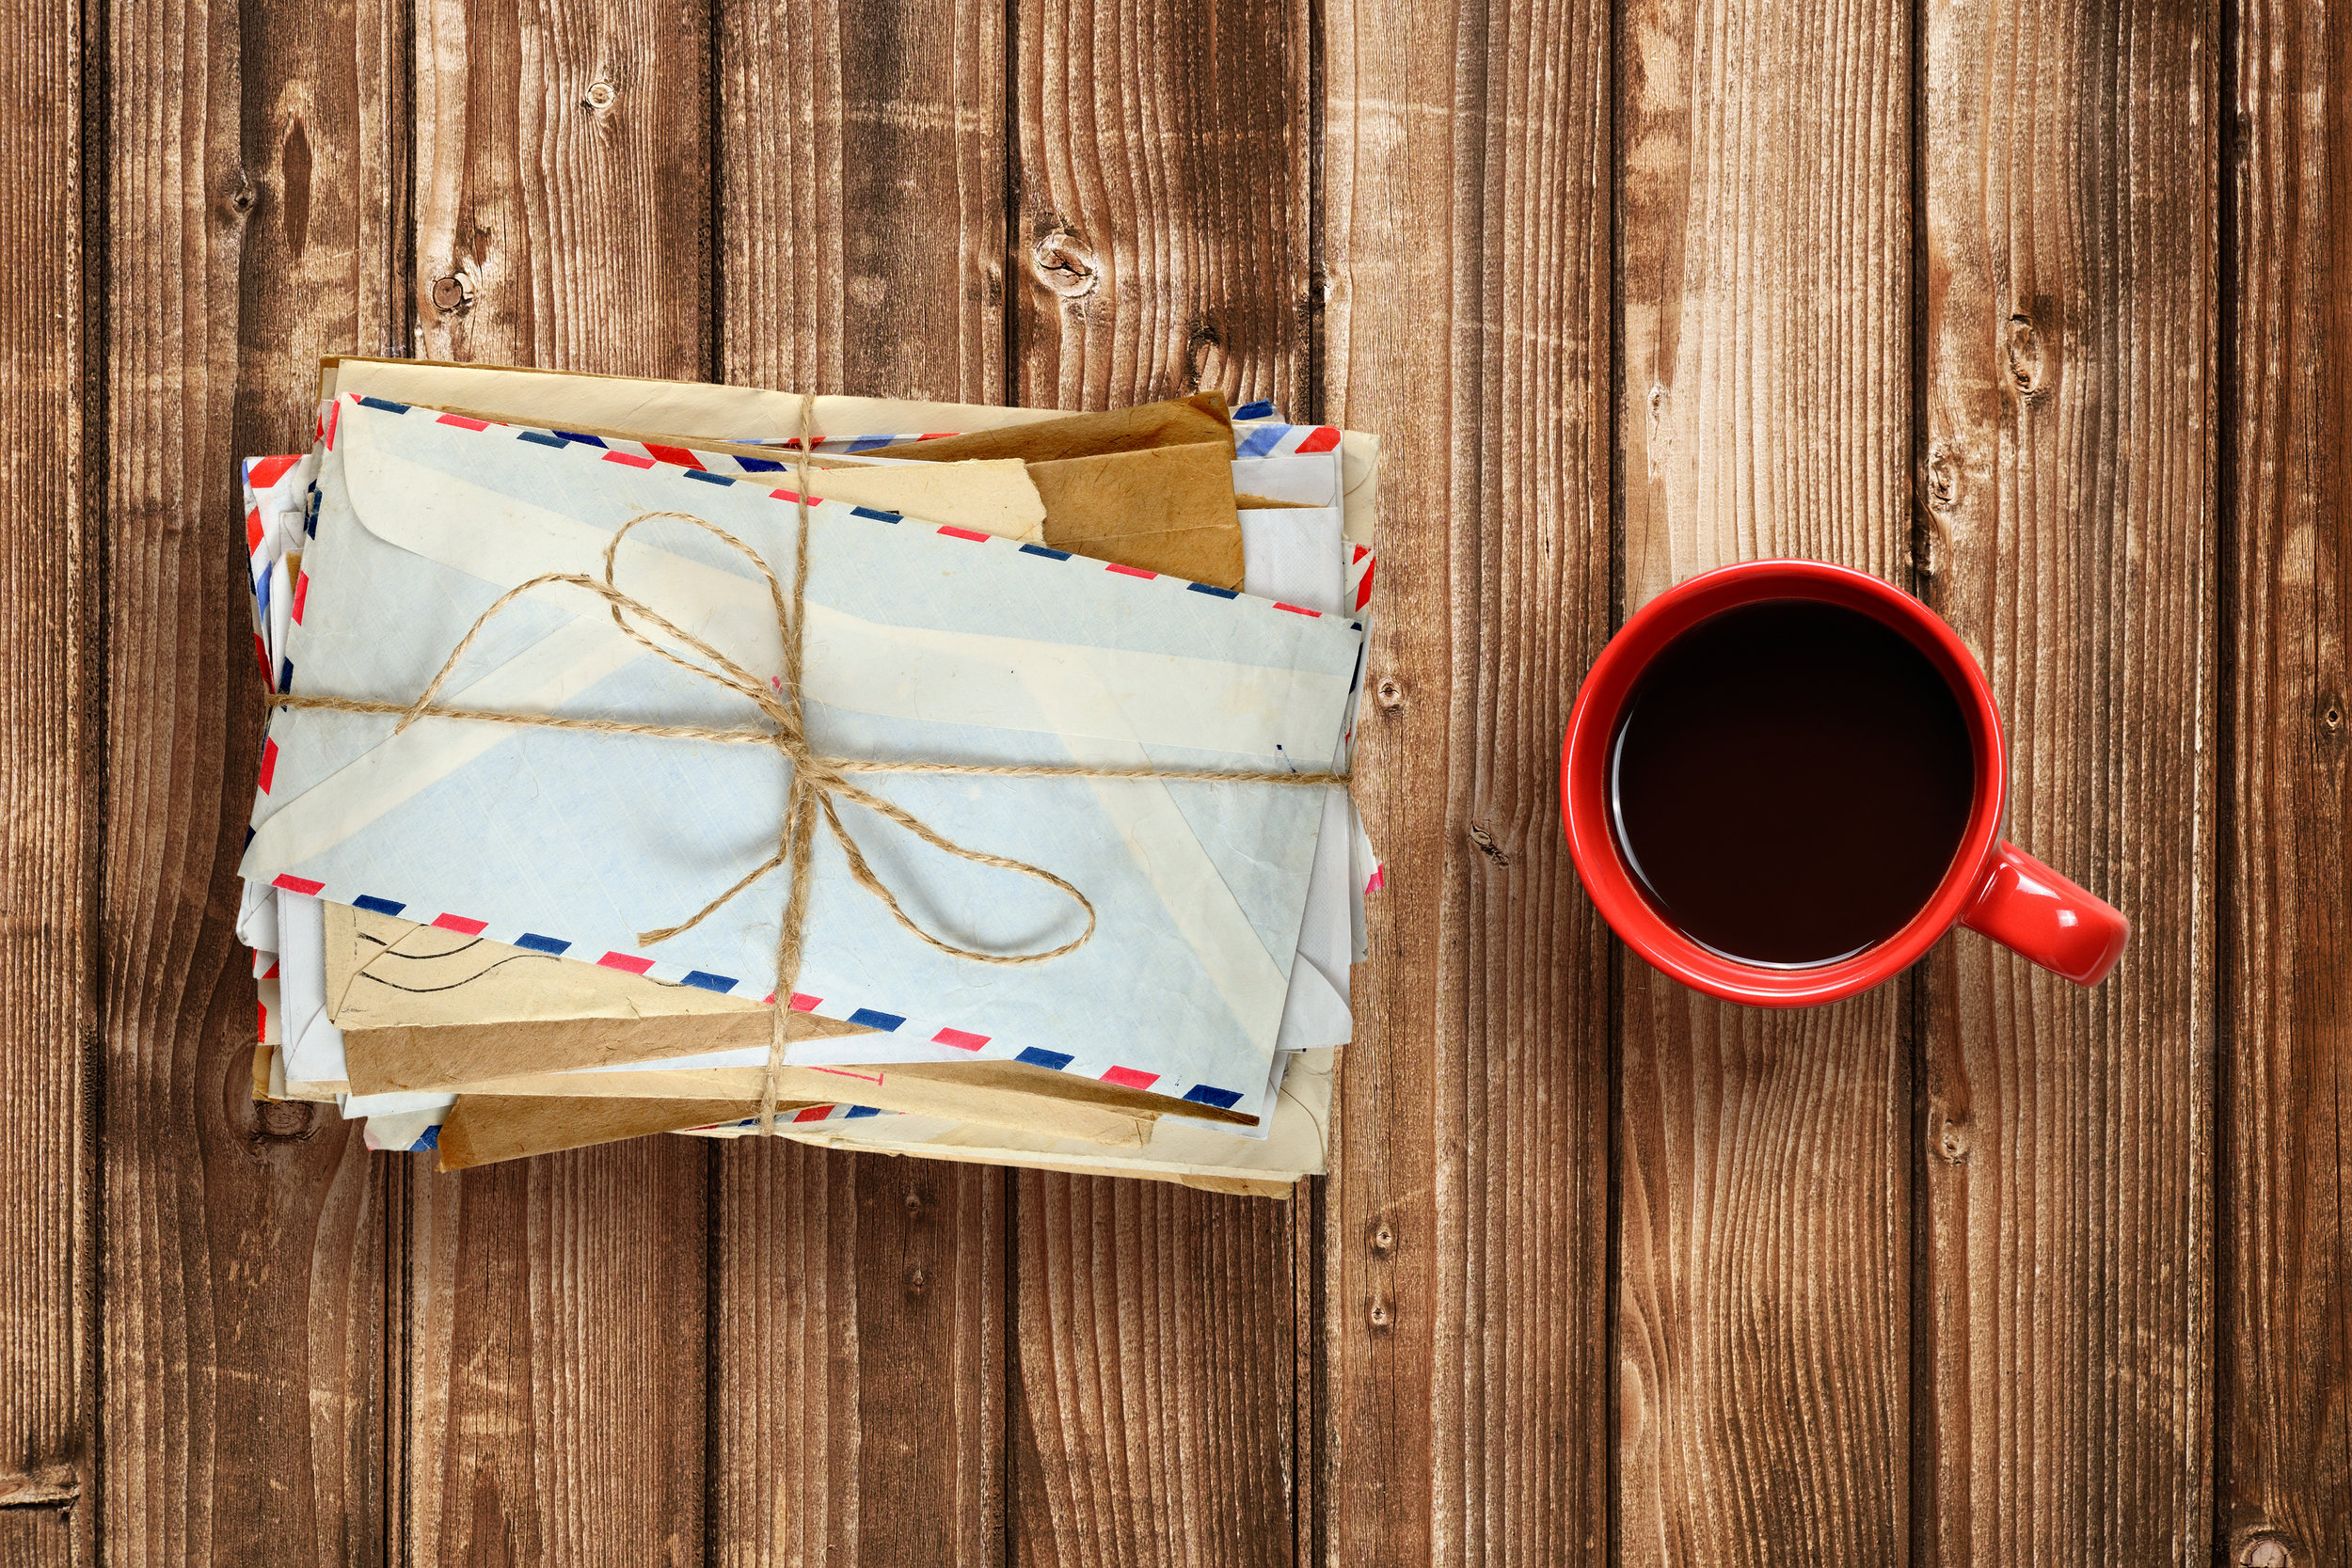 pile-of-old-envelopes-and-coffee-cup-on-wooden-P4QABRS.jpg